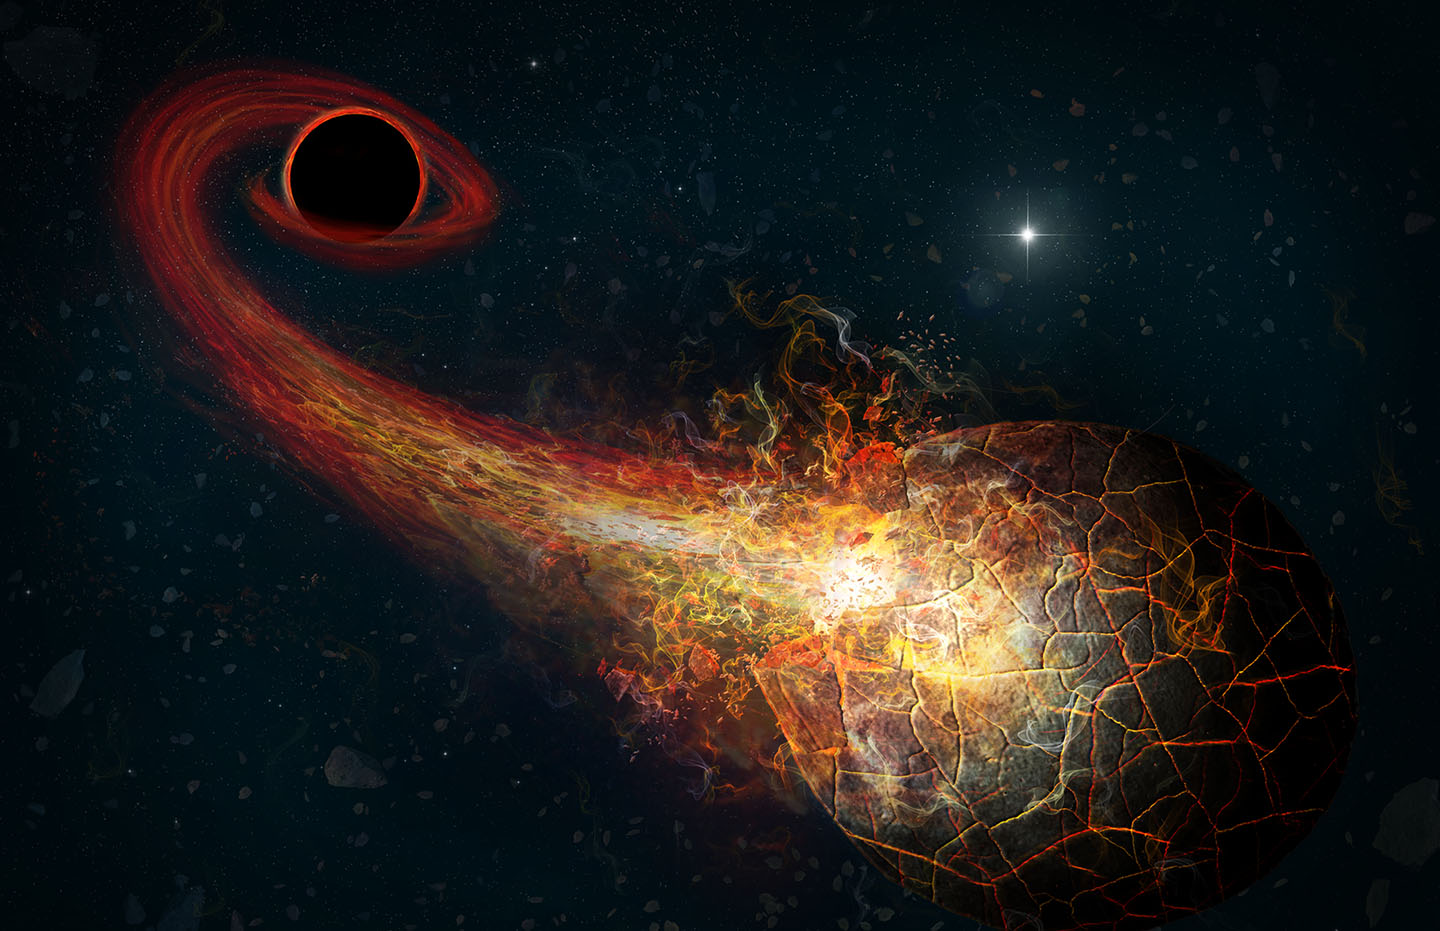 If Planet 9 is a Primordial Black Hole, We Might Be Able to See Flares When it Consumes Comets